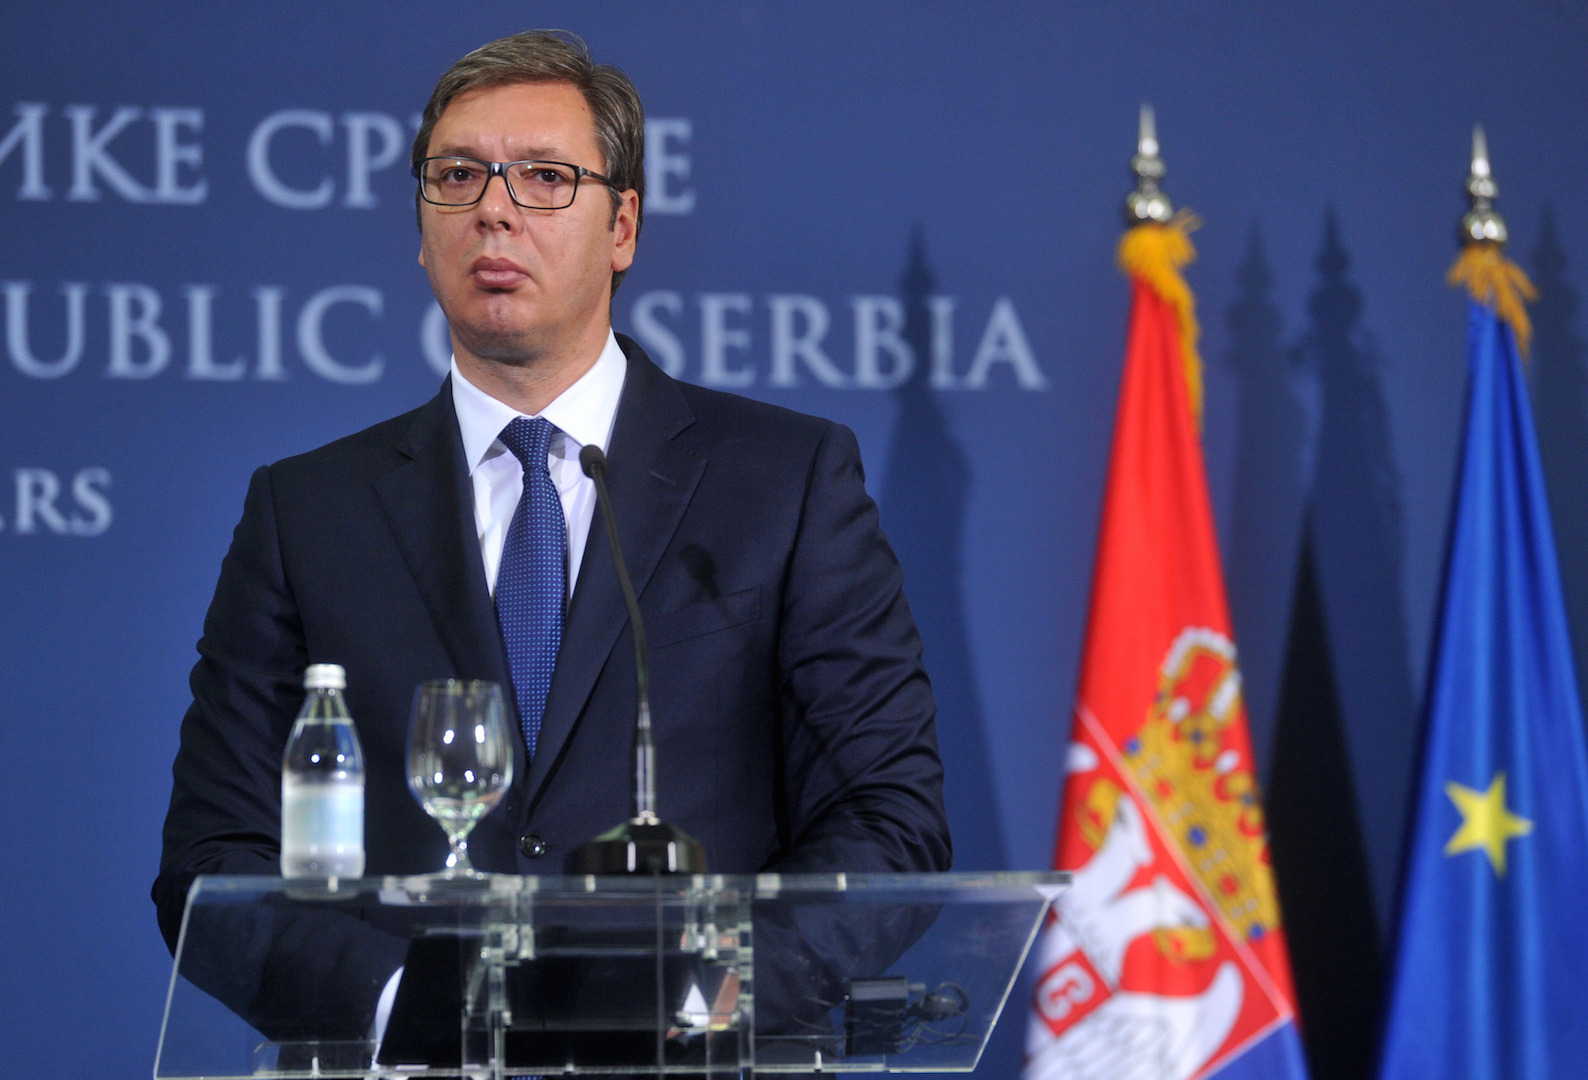 Vucic: Δεν αναμένεται να βρεθεί λύση για το Κόσσοβο στο Παρίσι